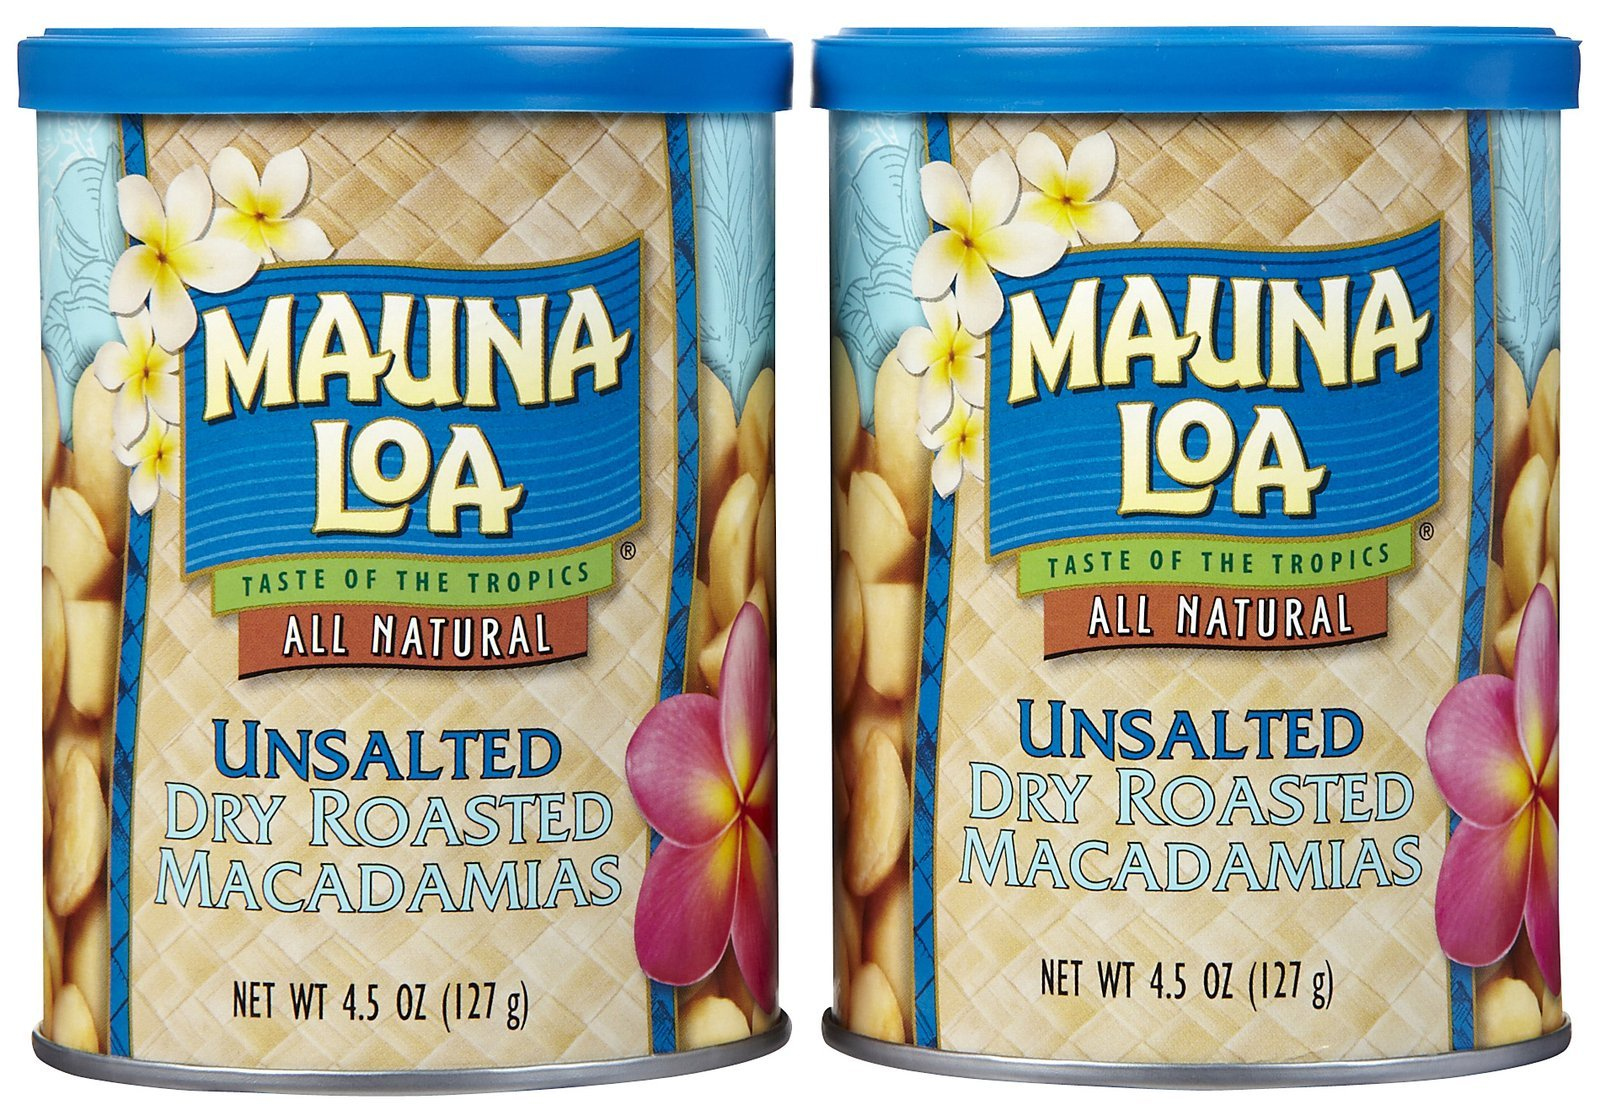 Mauna Loa Roasted Unsalted Macadamia Nuts Can, 4.5 oz, 2 pk